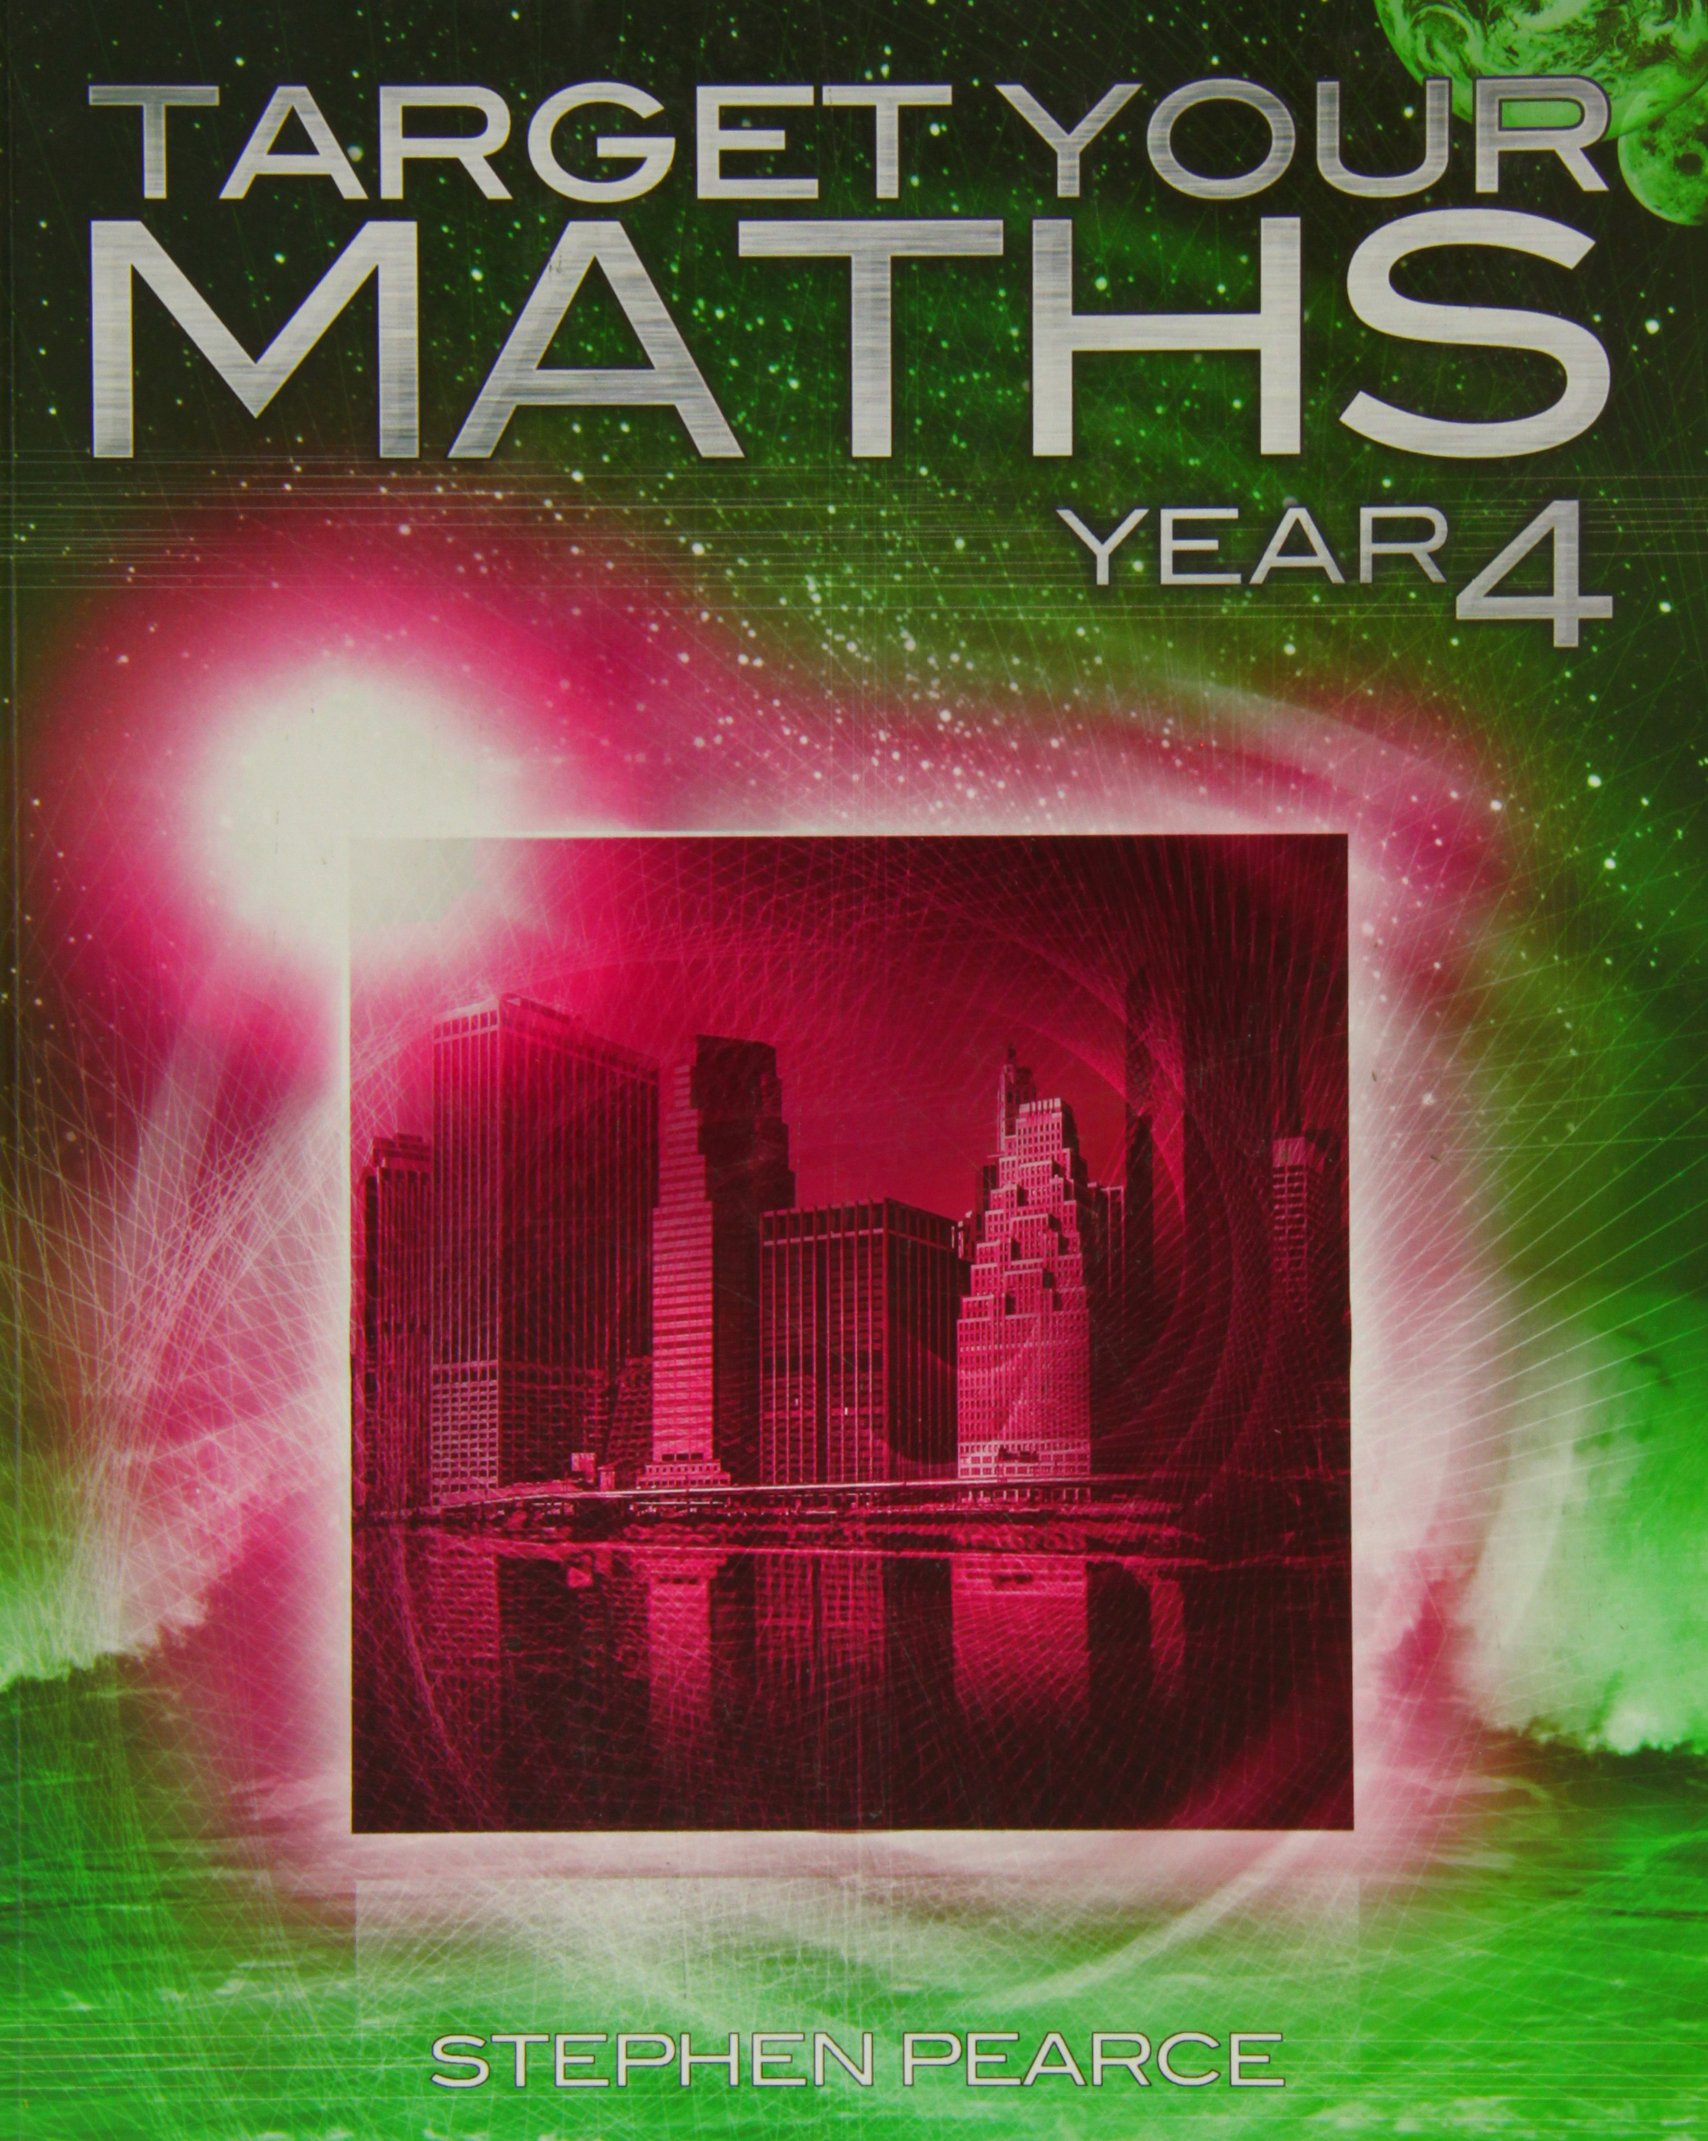 Target Your Maths Year 4 Year 4 Amazon Stephen Pearce